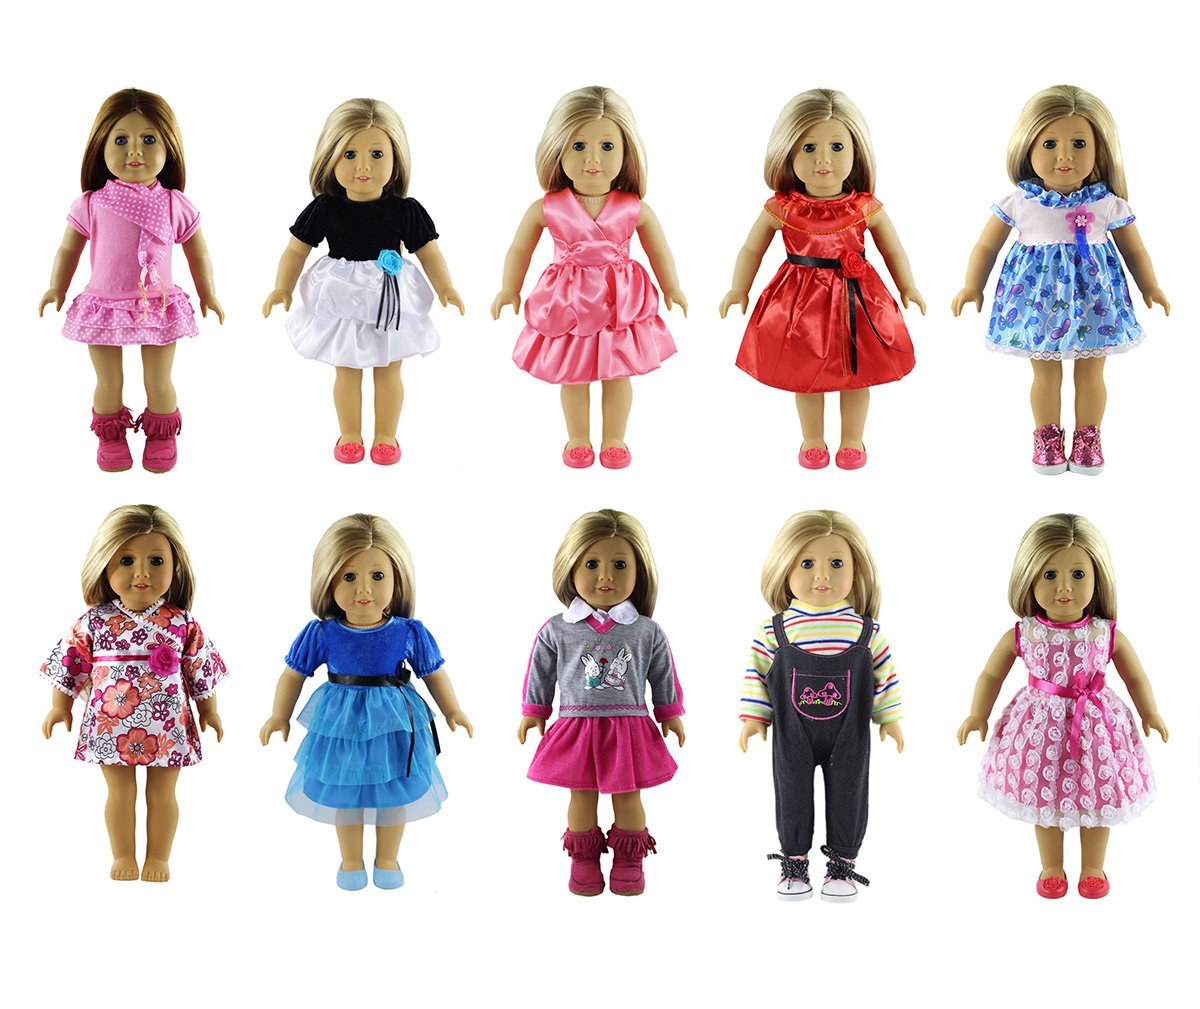 18 inches Doll Clothes 10 Different Unique Styles Well Fit for American Girls Doll, Doll and Me, My Life Doll, and My Generation Doll by Party Zealot